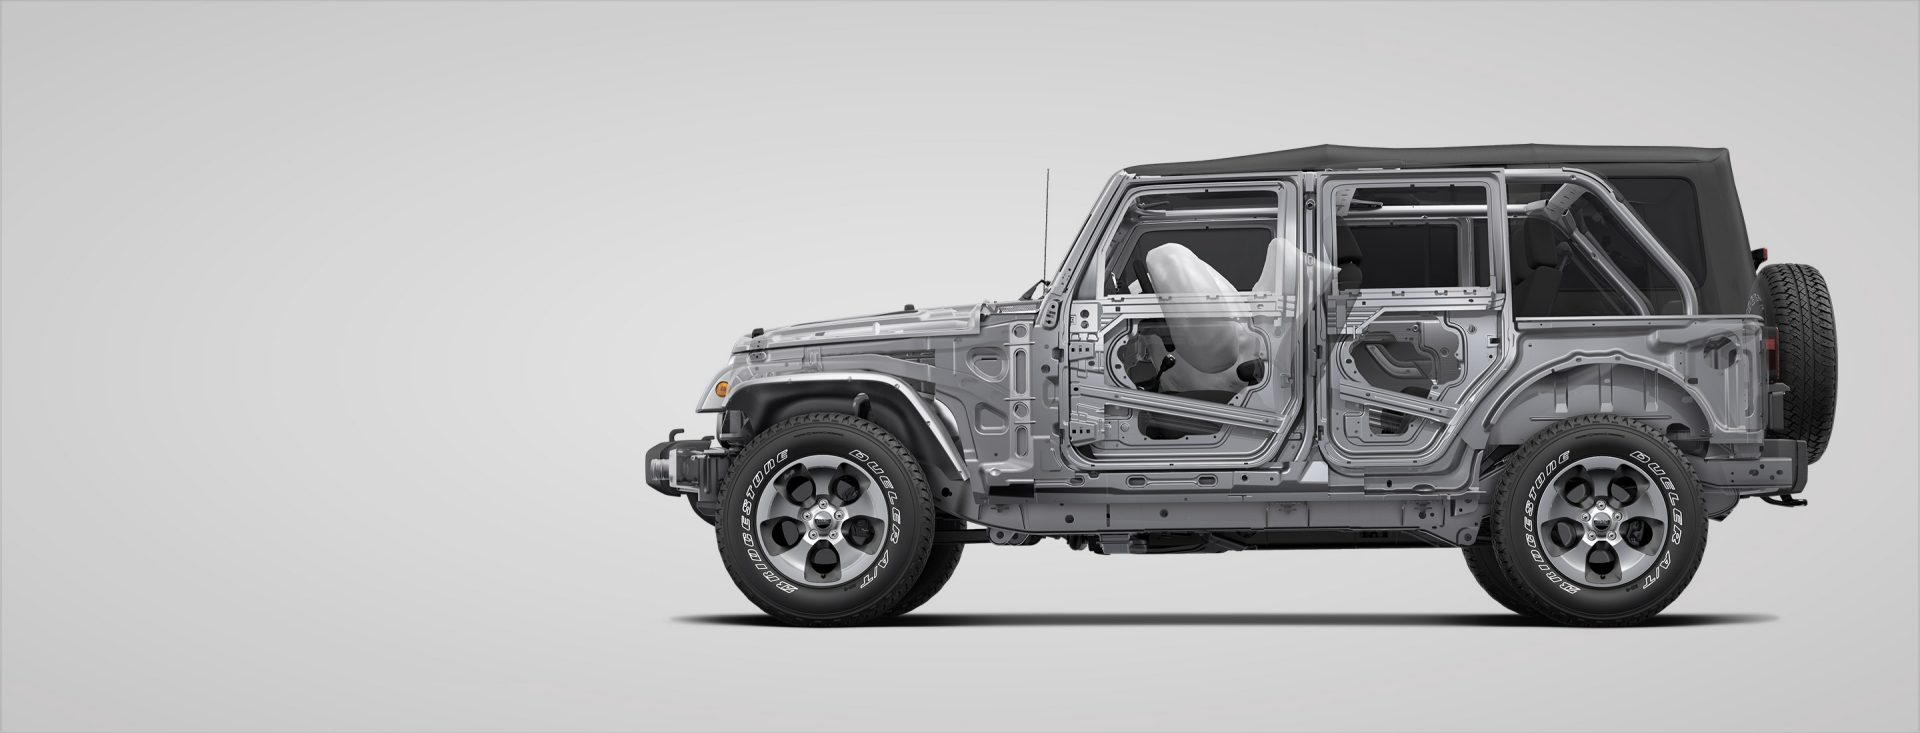 2017-Jeep-Wrangler-Unlimited-Safety-Security-Hero-new